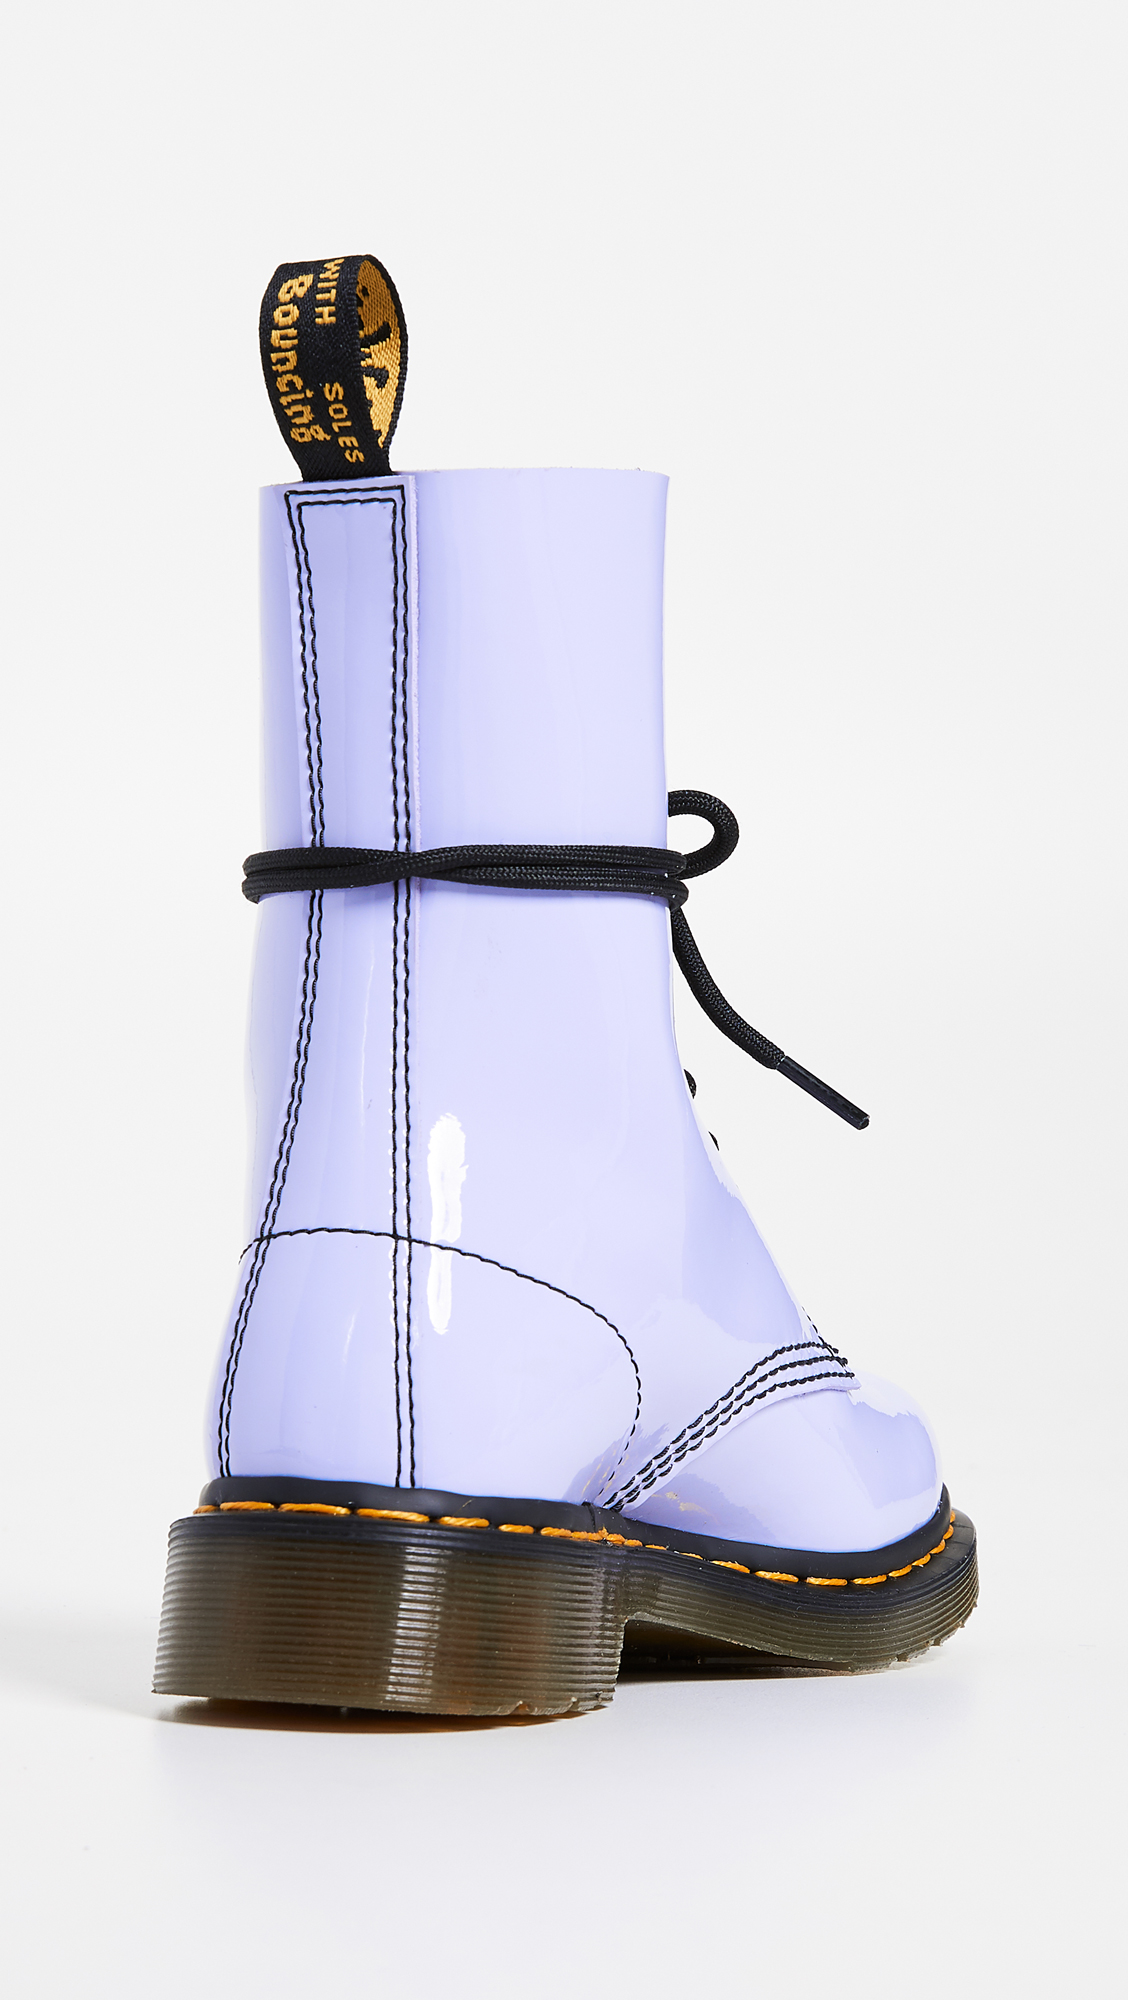 X DrMartens Marc Marc BootsShopbop X Jacobs Marc Jacobs BootsShopbop Jacobs DrMartens rCtshQd